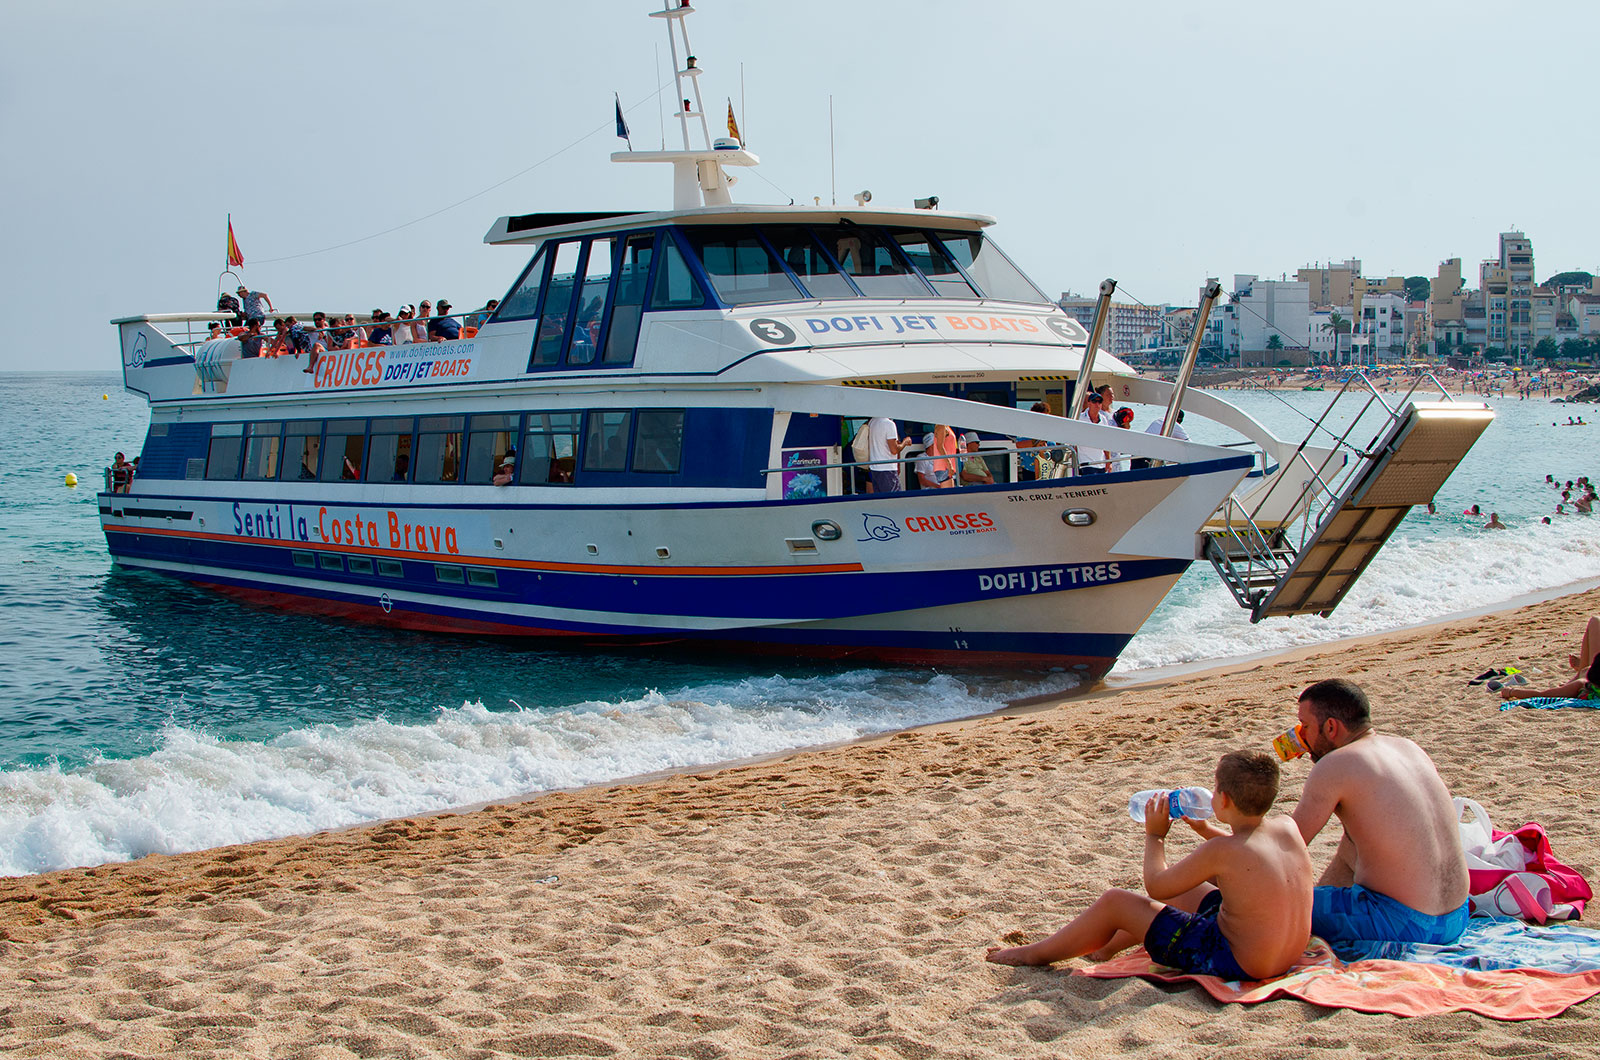 Sightseeing boat at Blanes beach in Costa Brava, Catalonia, Spain